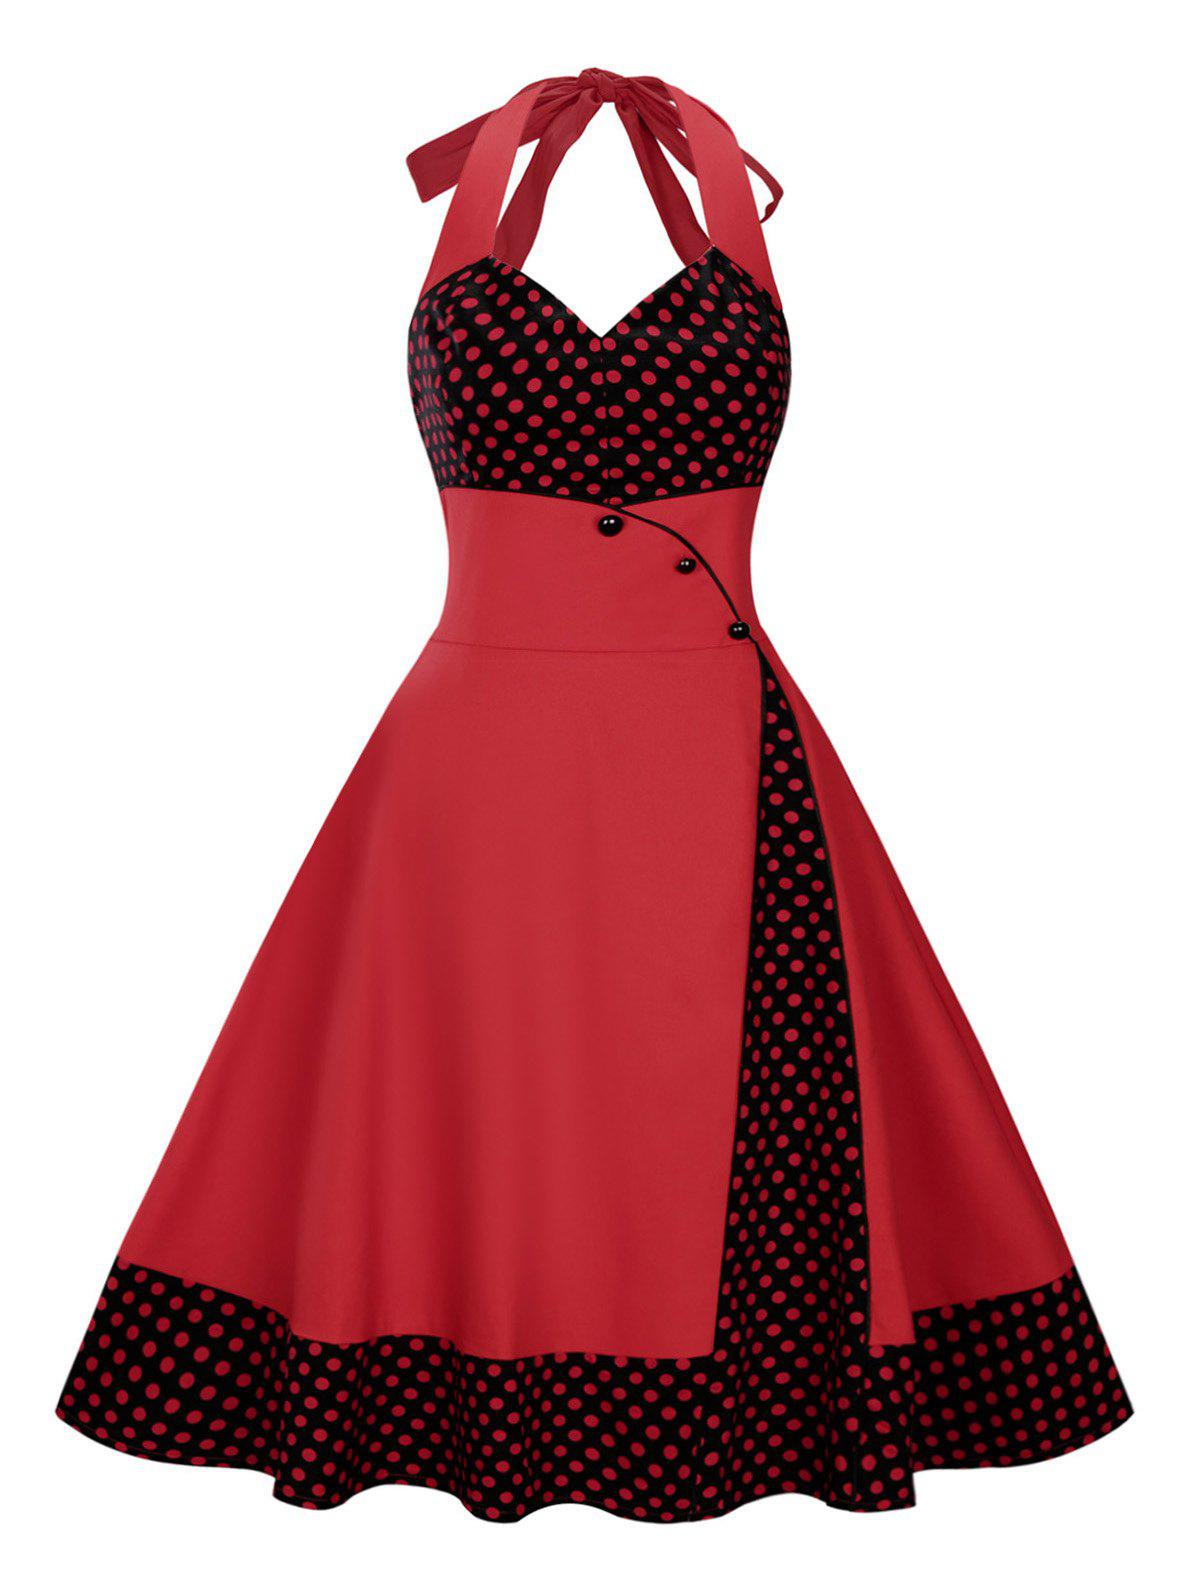 Plus Size Halter Midi Polka Dot DressWOMEN<br><br>Size: 3XL; Color: DEEP RED; Style: Vintage; Material: Cotton Blend,Polyester; Silhouette: Ball Gown; Dresses Length: Mid-Calf; Neckline: Halter; Sleeve Length: Sleeveless; Waist: High Waisted; Embellishment: Button,Vintage; Pattern Type: Polka Dot,Print; With Belt: No; Season: Spring,Summer; Weight: 0.4300kg; Package Contents: 1 x Dress;